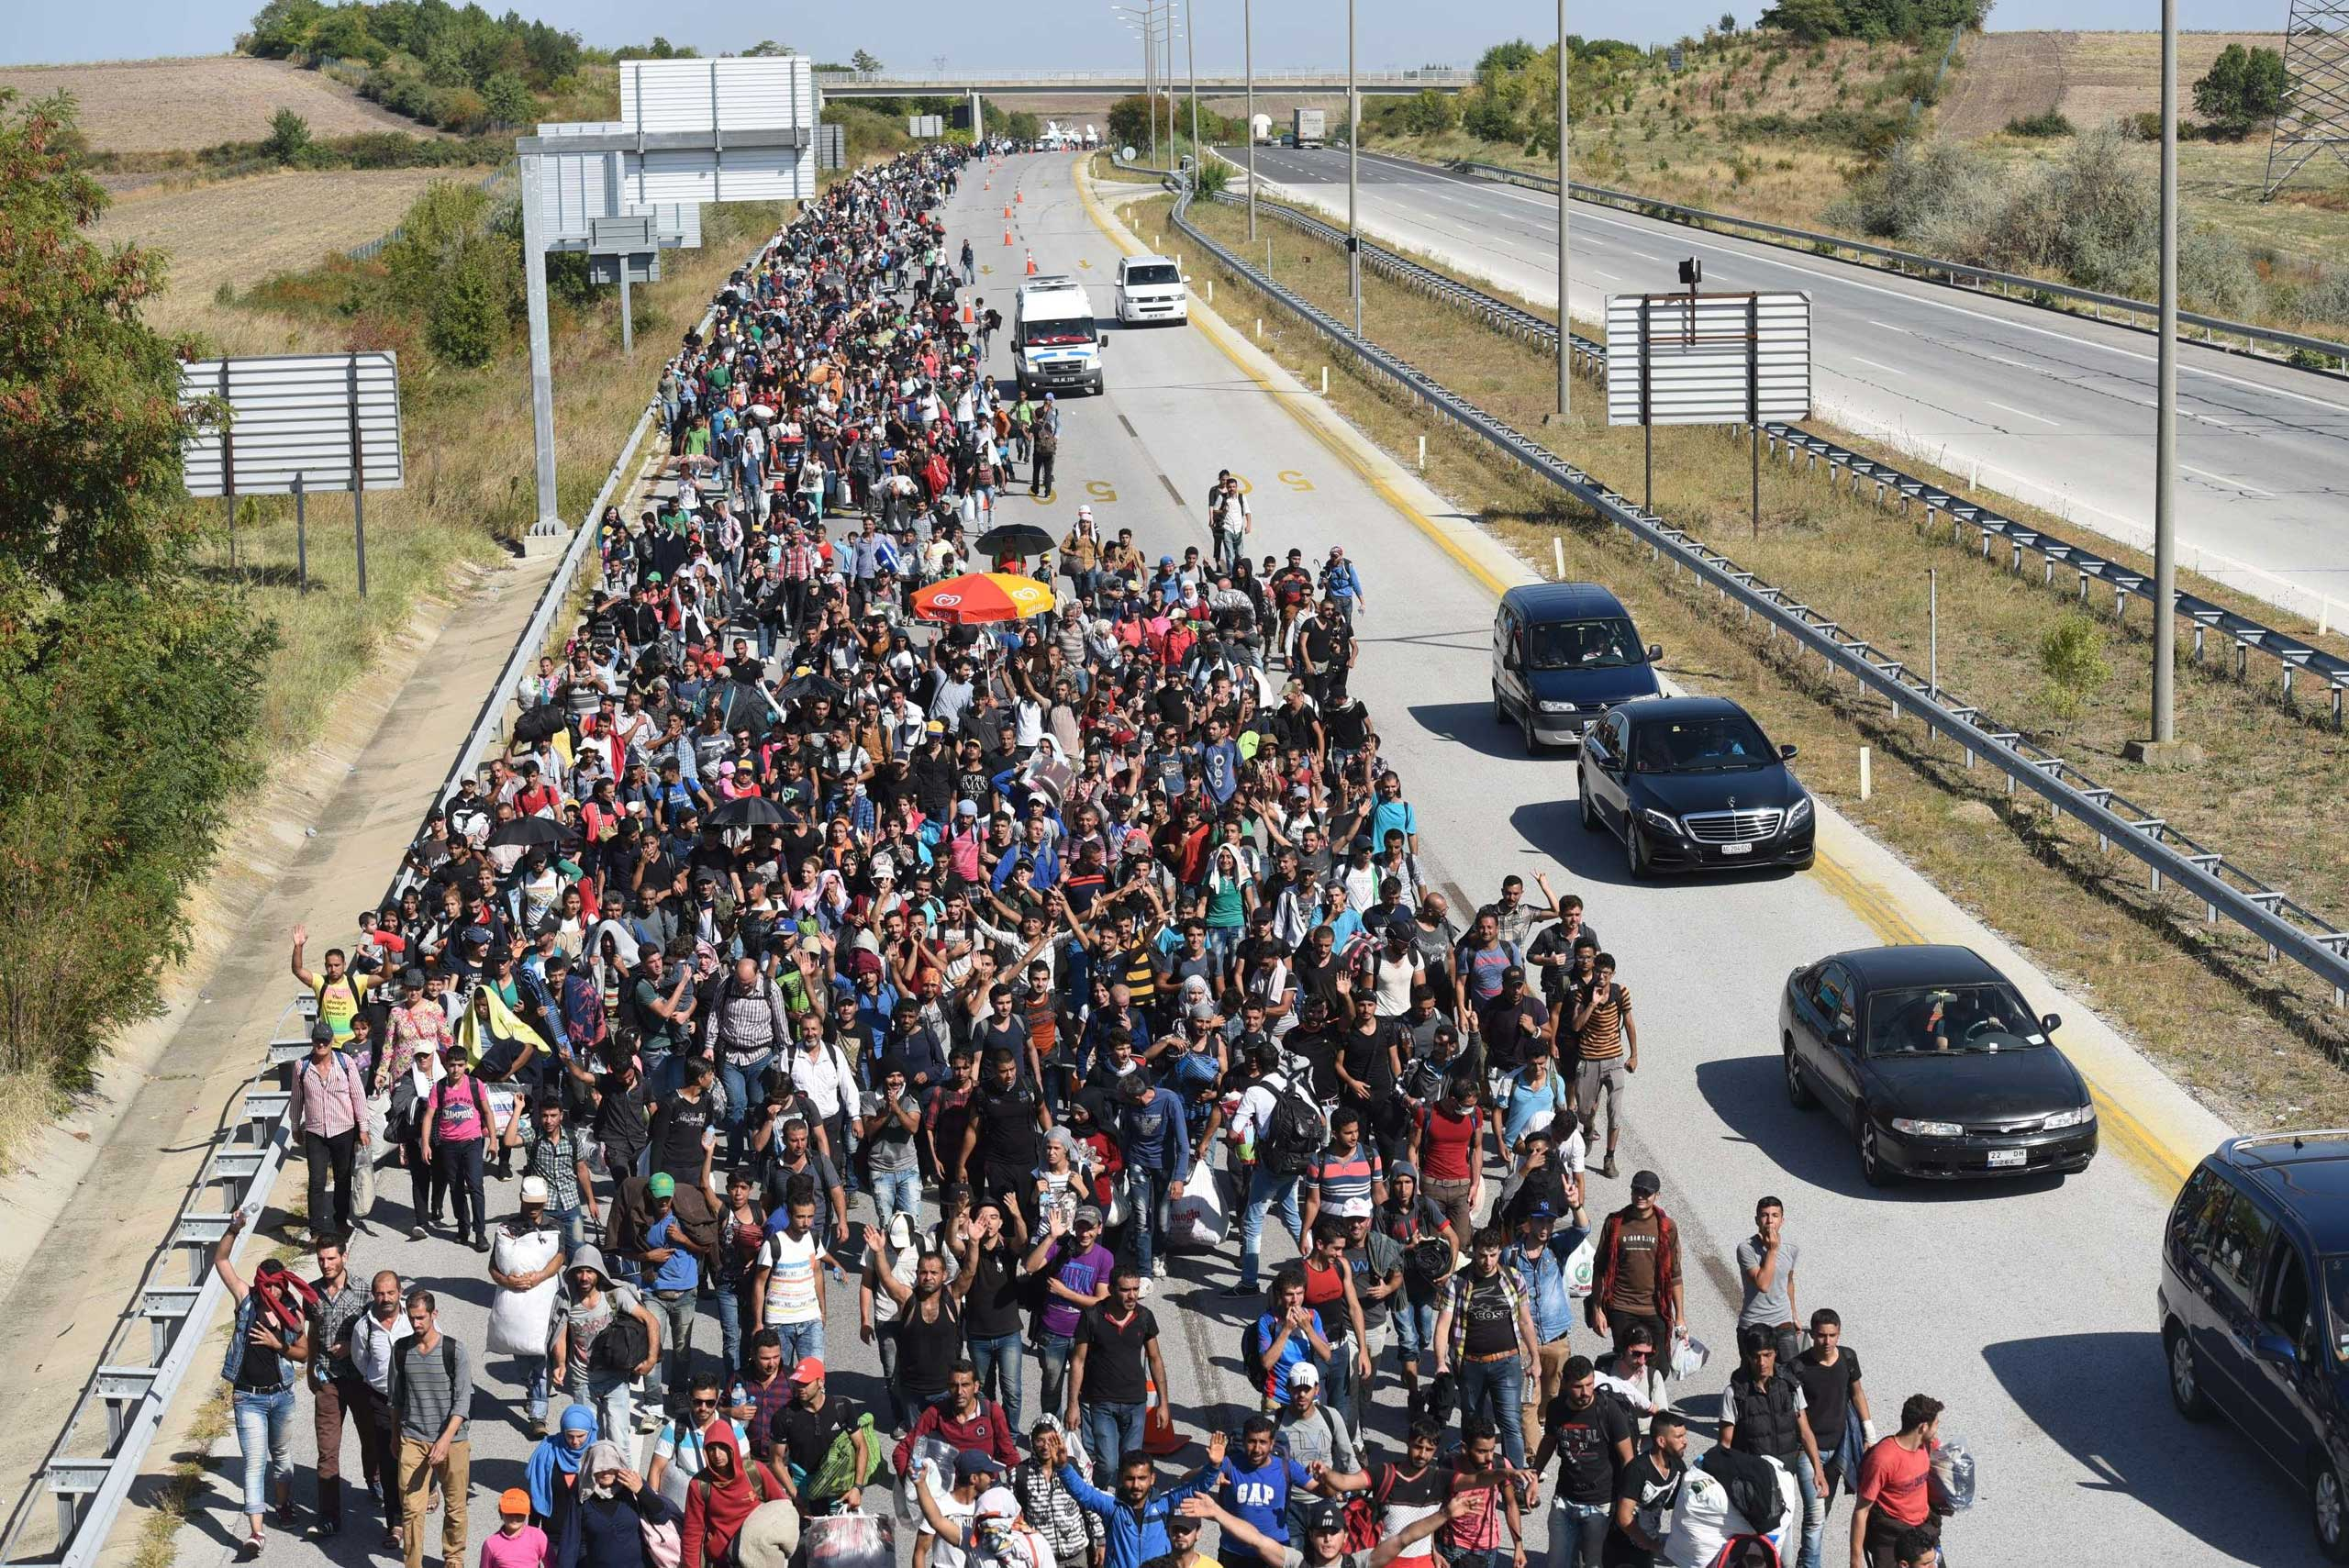 Syrian migrants and refugees march towards the border between Turkey and Greece, in Turkey, on Sept. 18, 2015.